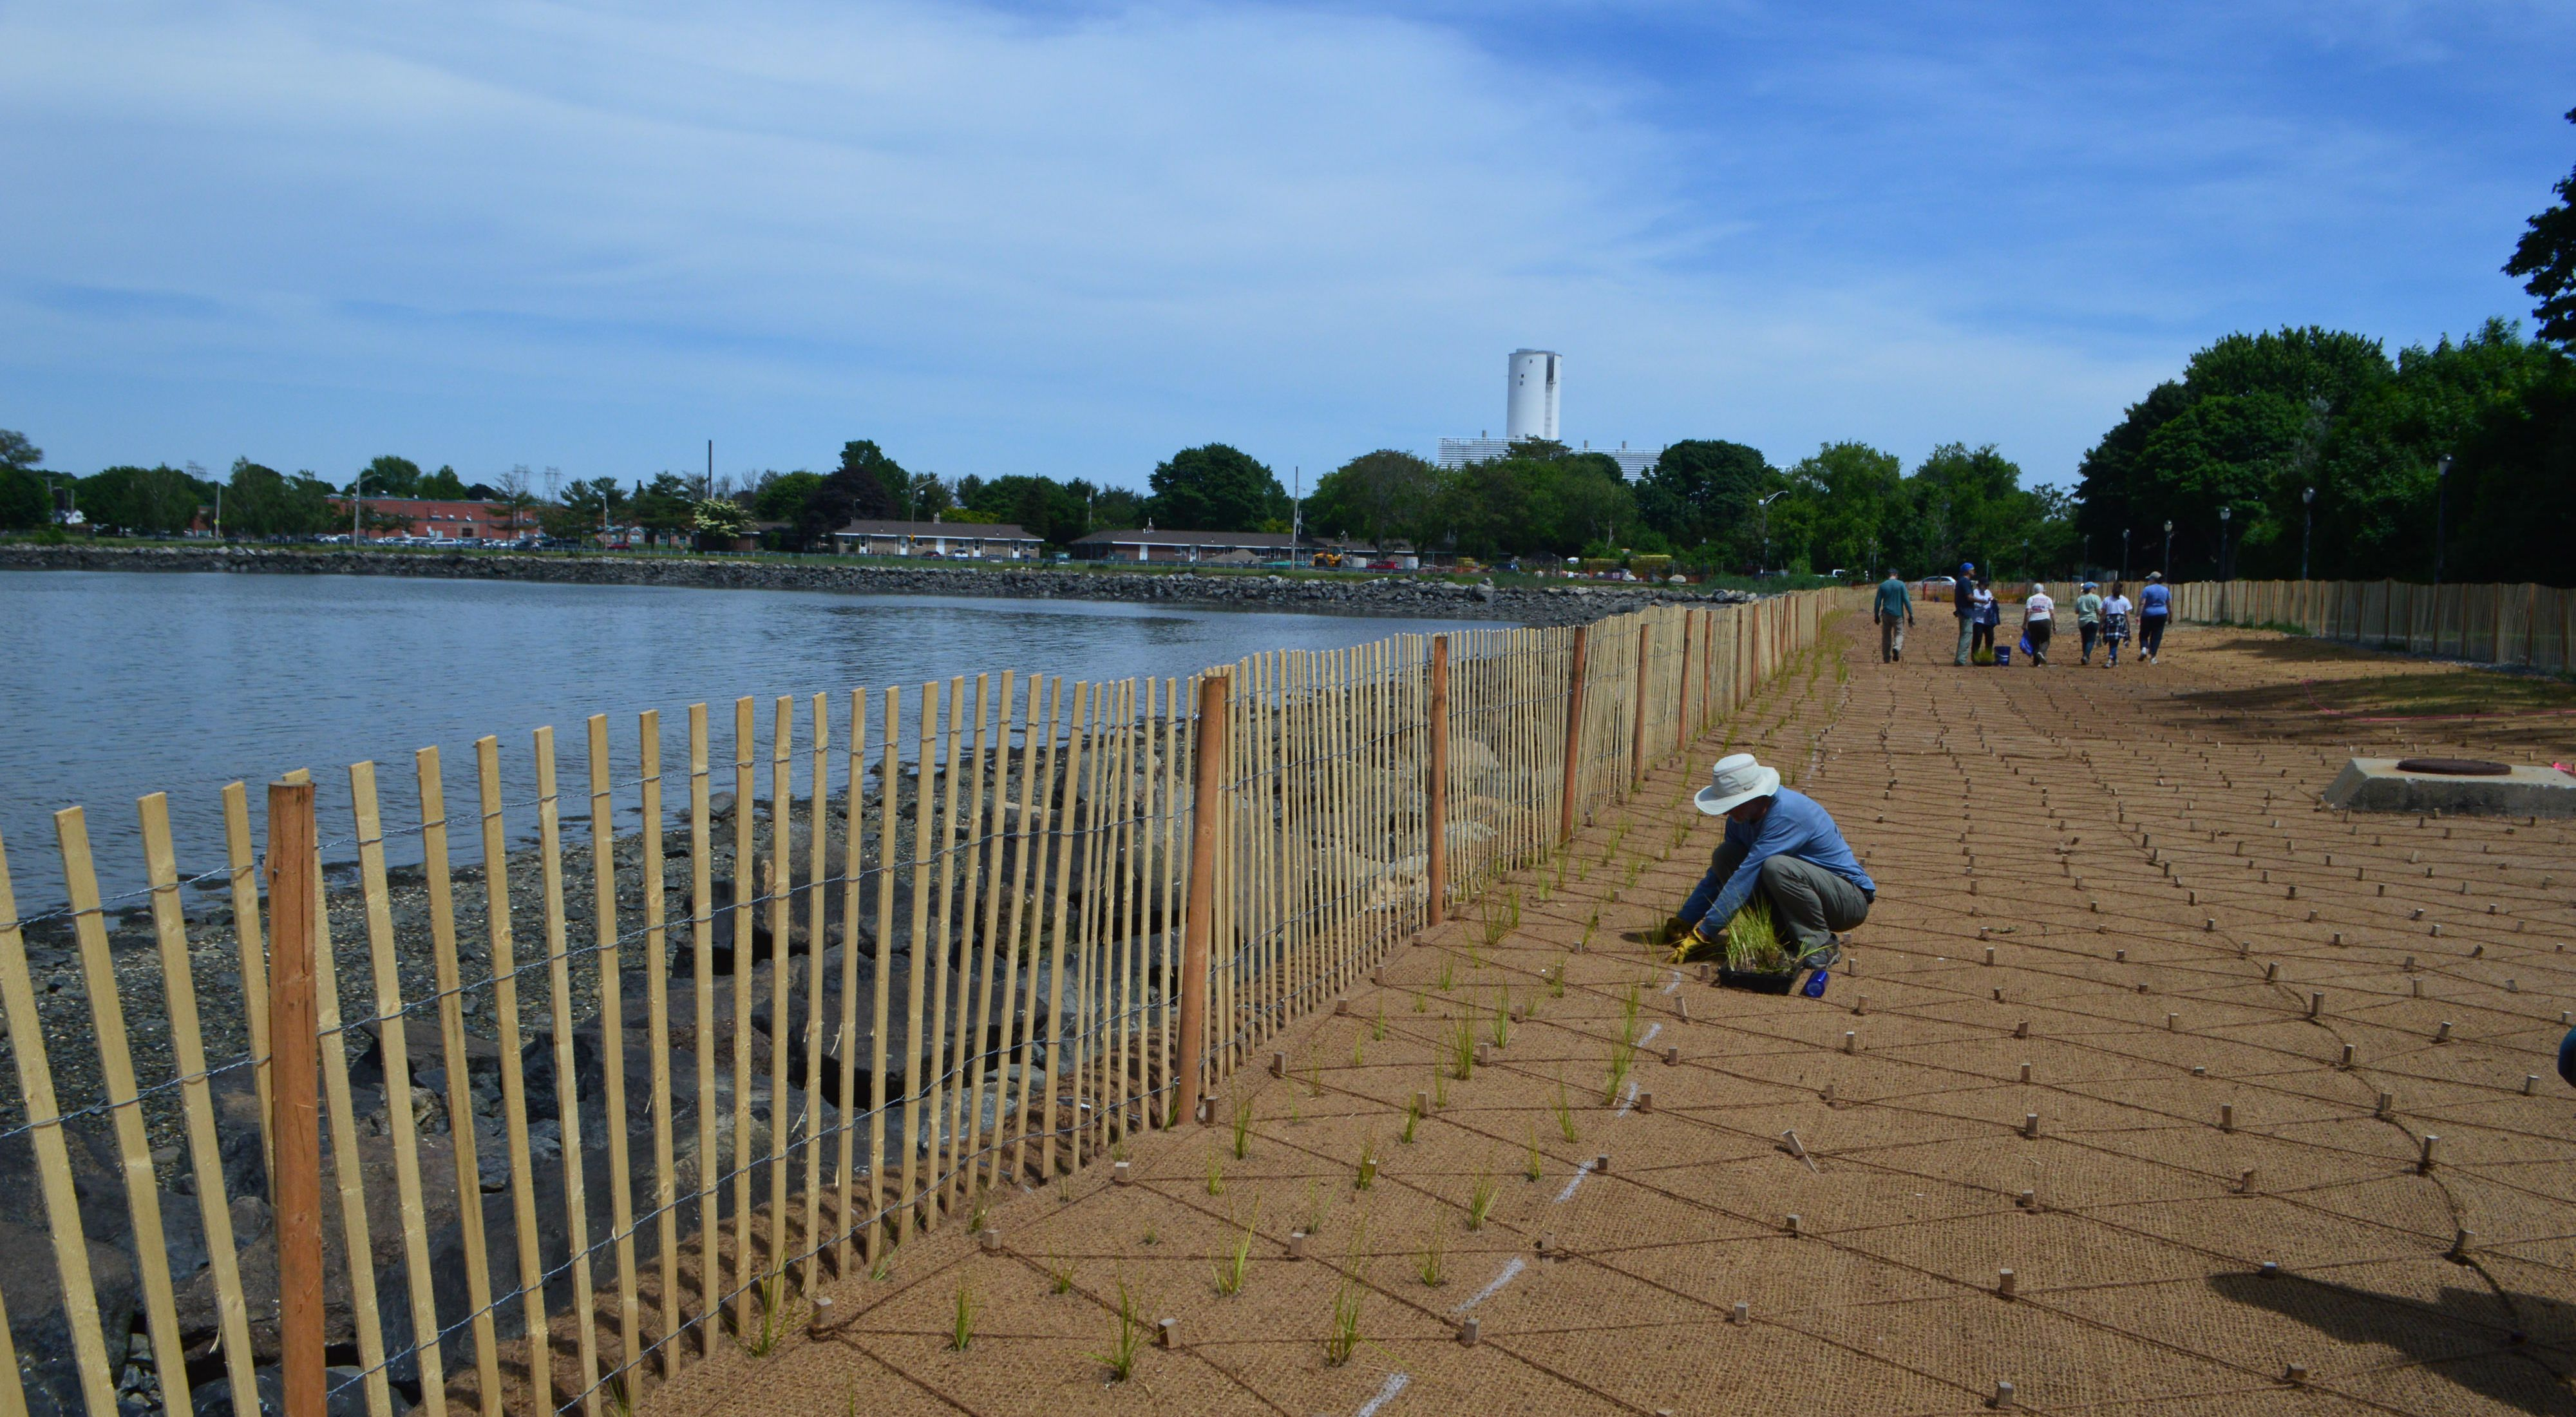 TNC, local organizations and volunteers plant marsh grass plugs to restore a salt marsh along Salem's Collins Cove to naturally address flooding and erosion.